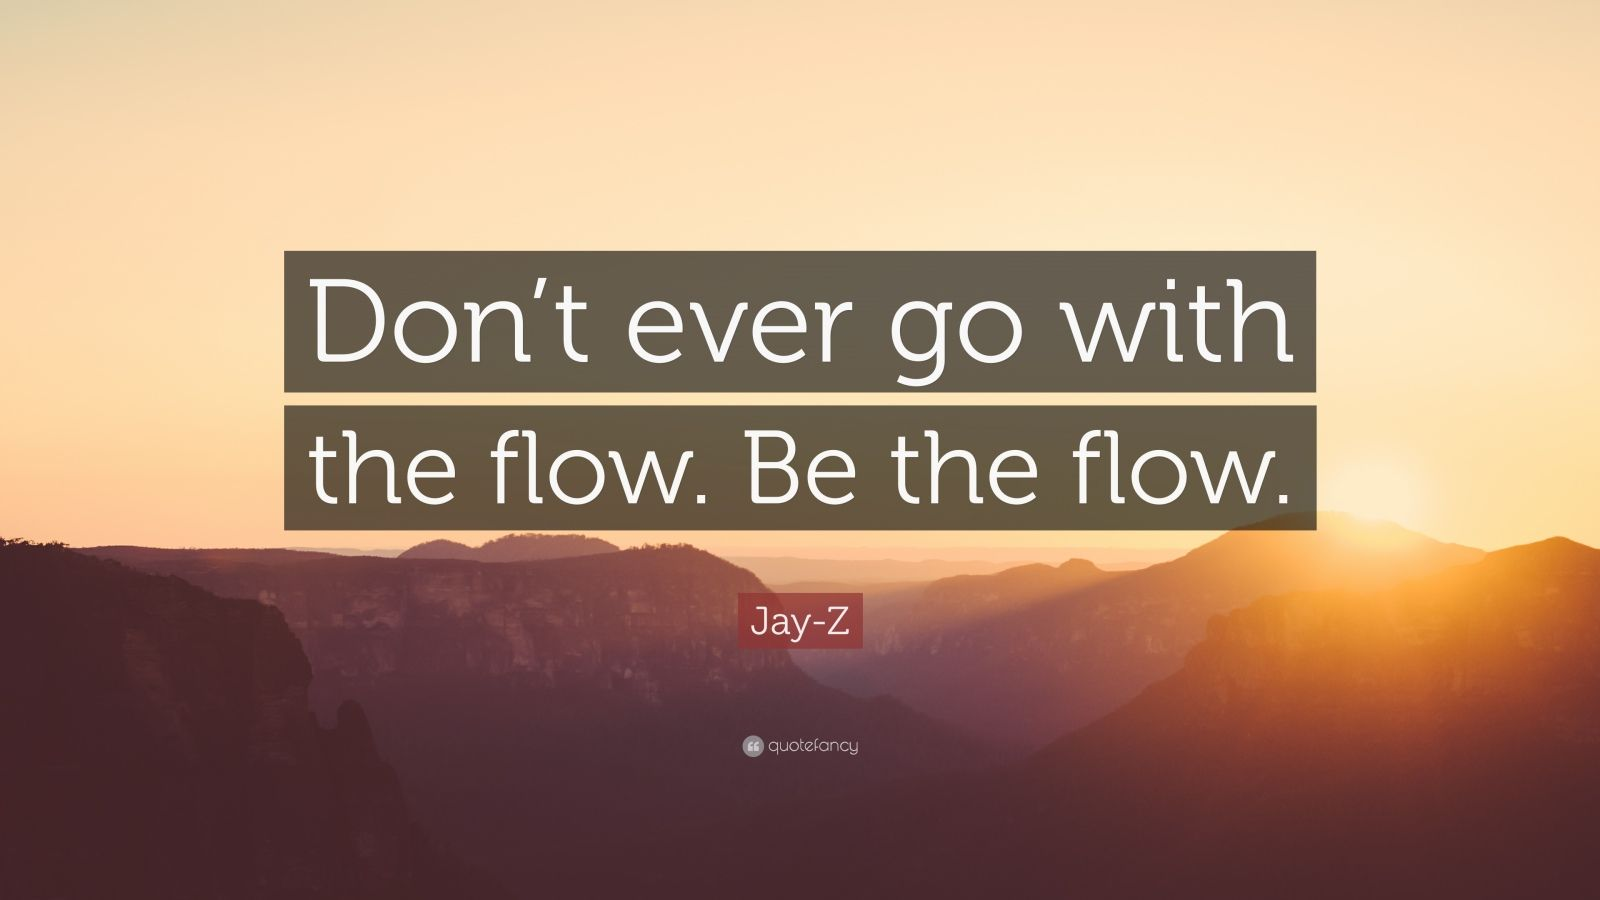 Jay Z Quotes 100 Wallpapers Quotefancy